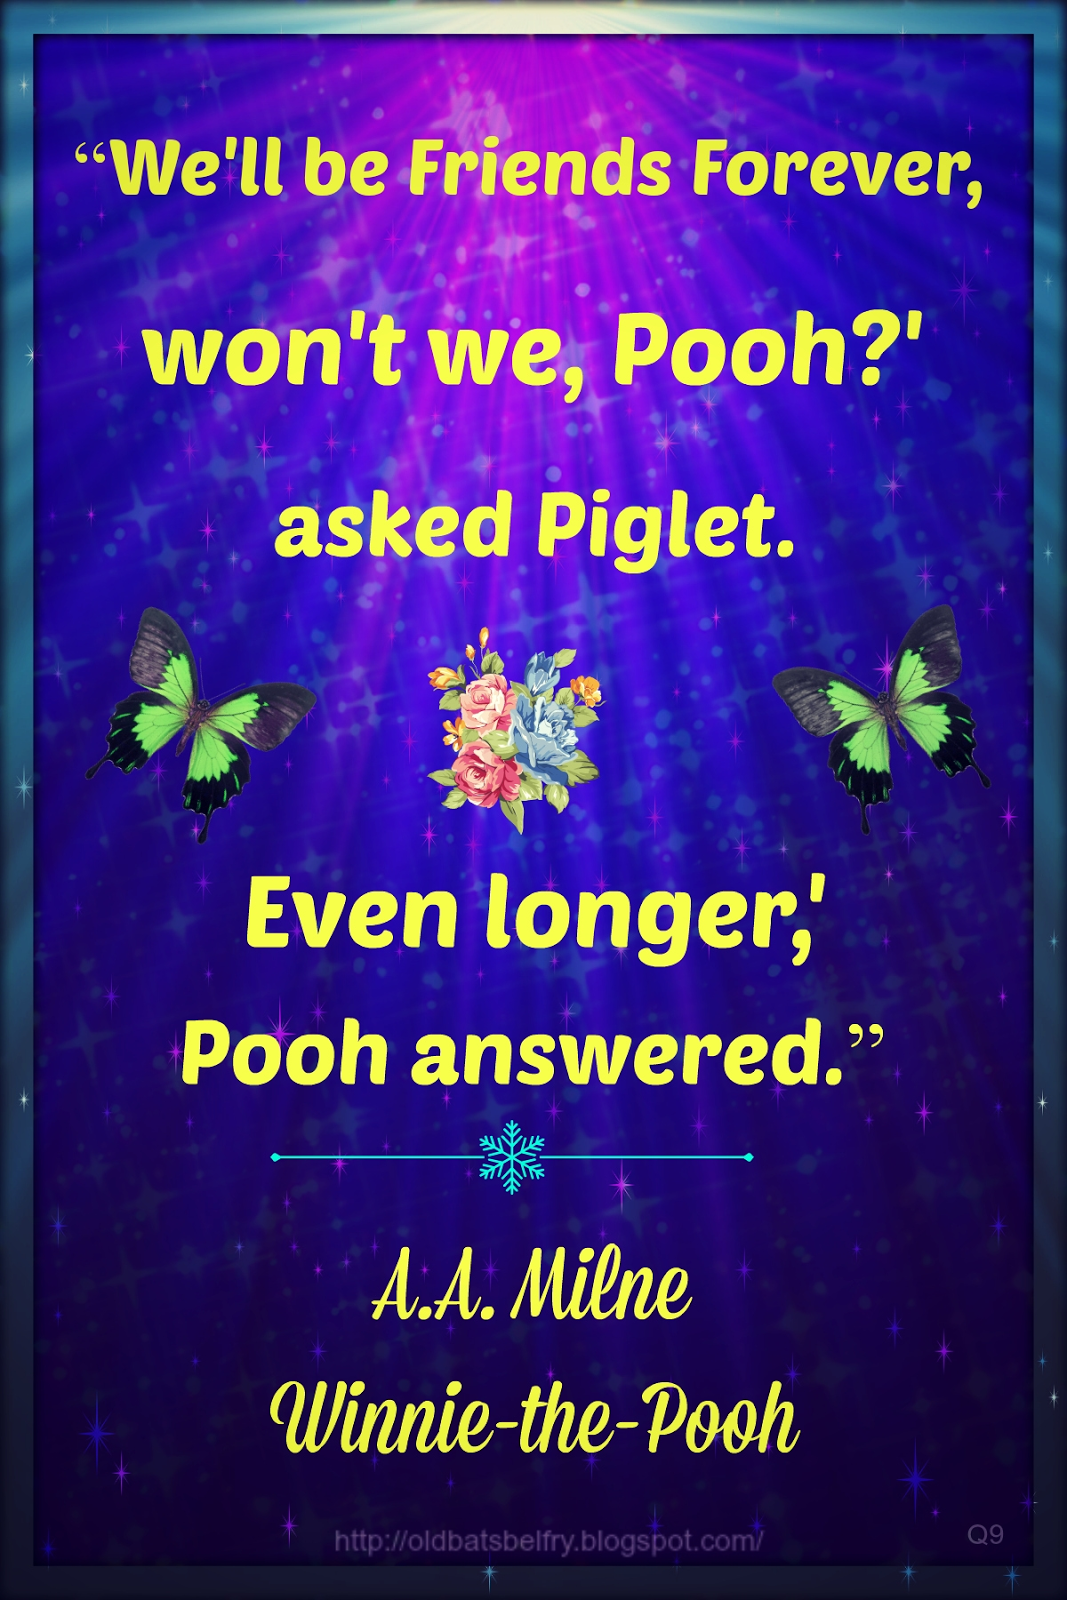 Quote by A.A. Milne ~ Design by Mulluane